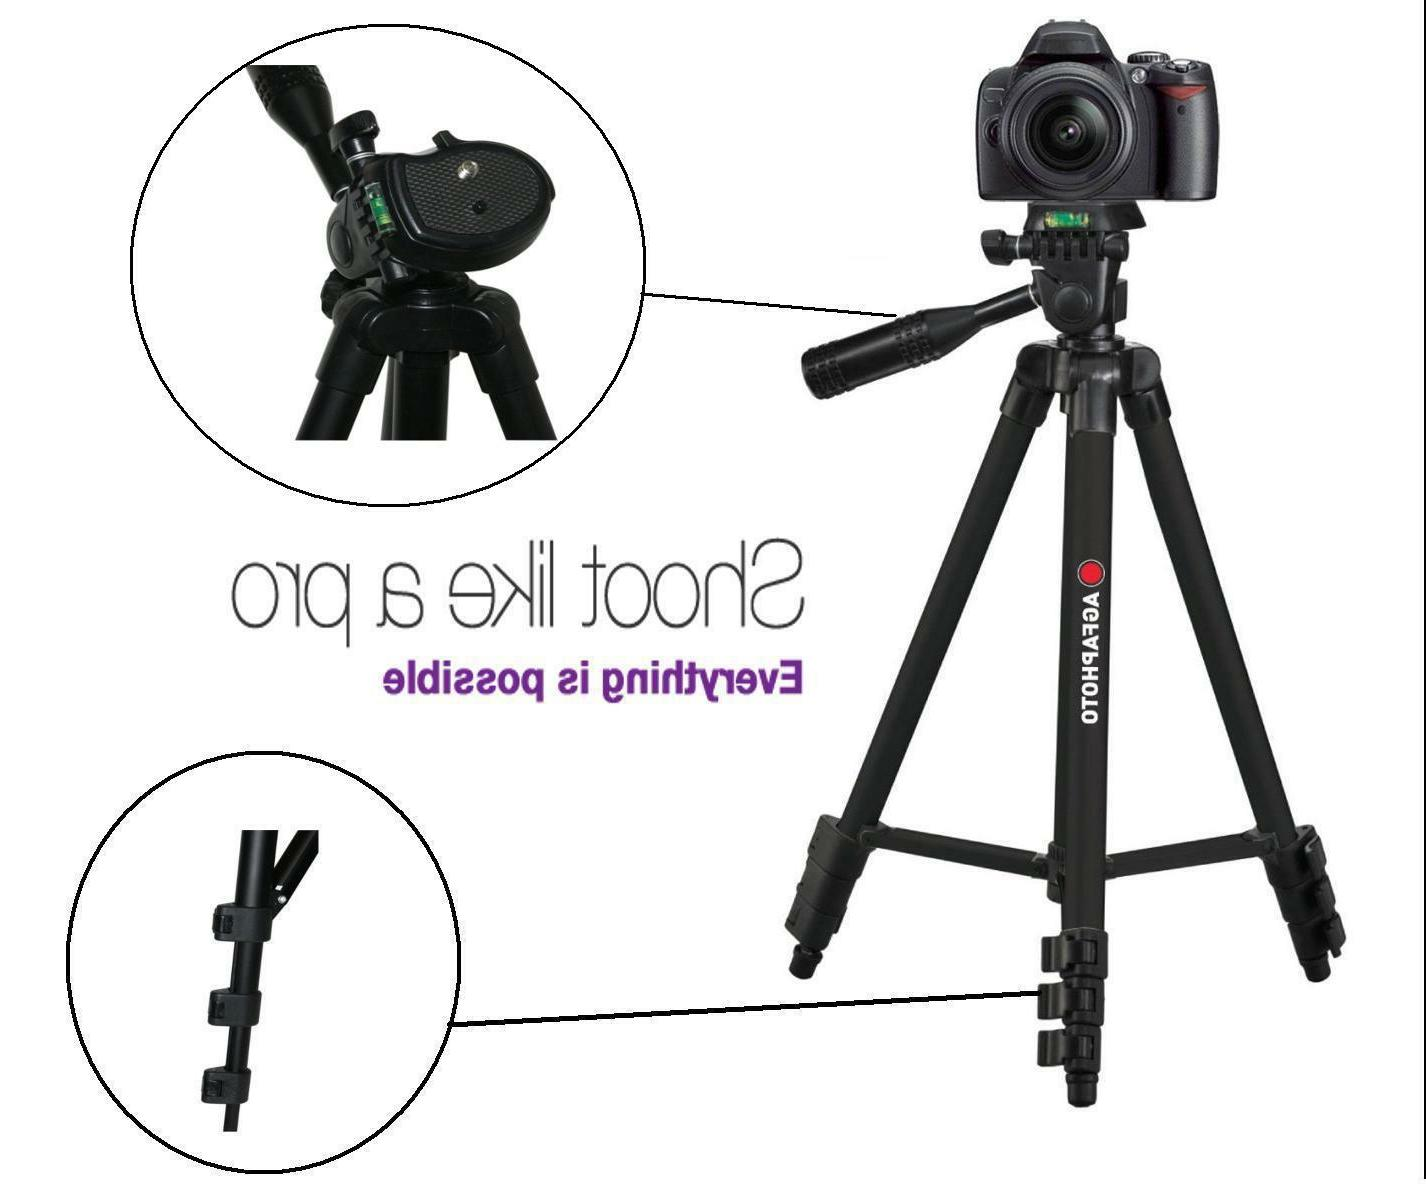 50 pro tripod with case for sony